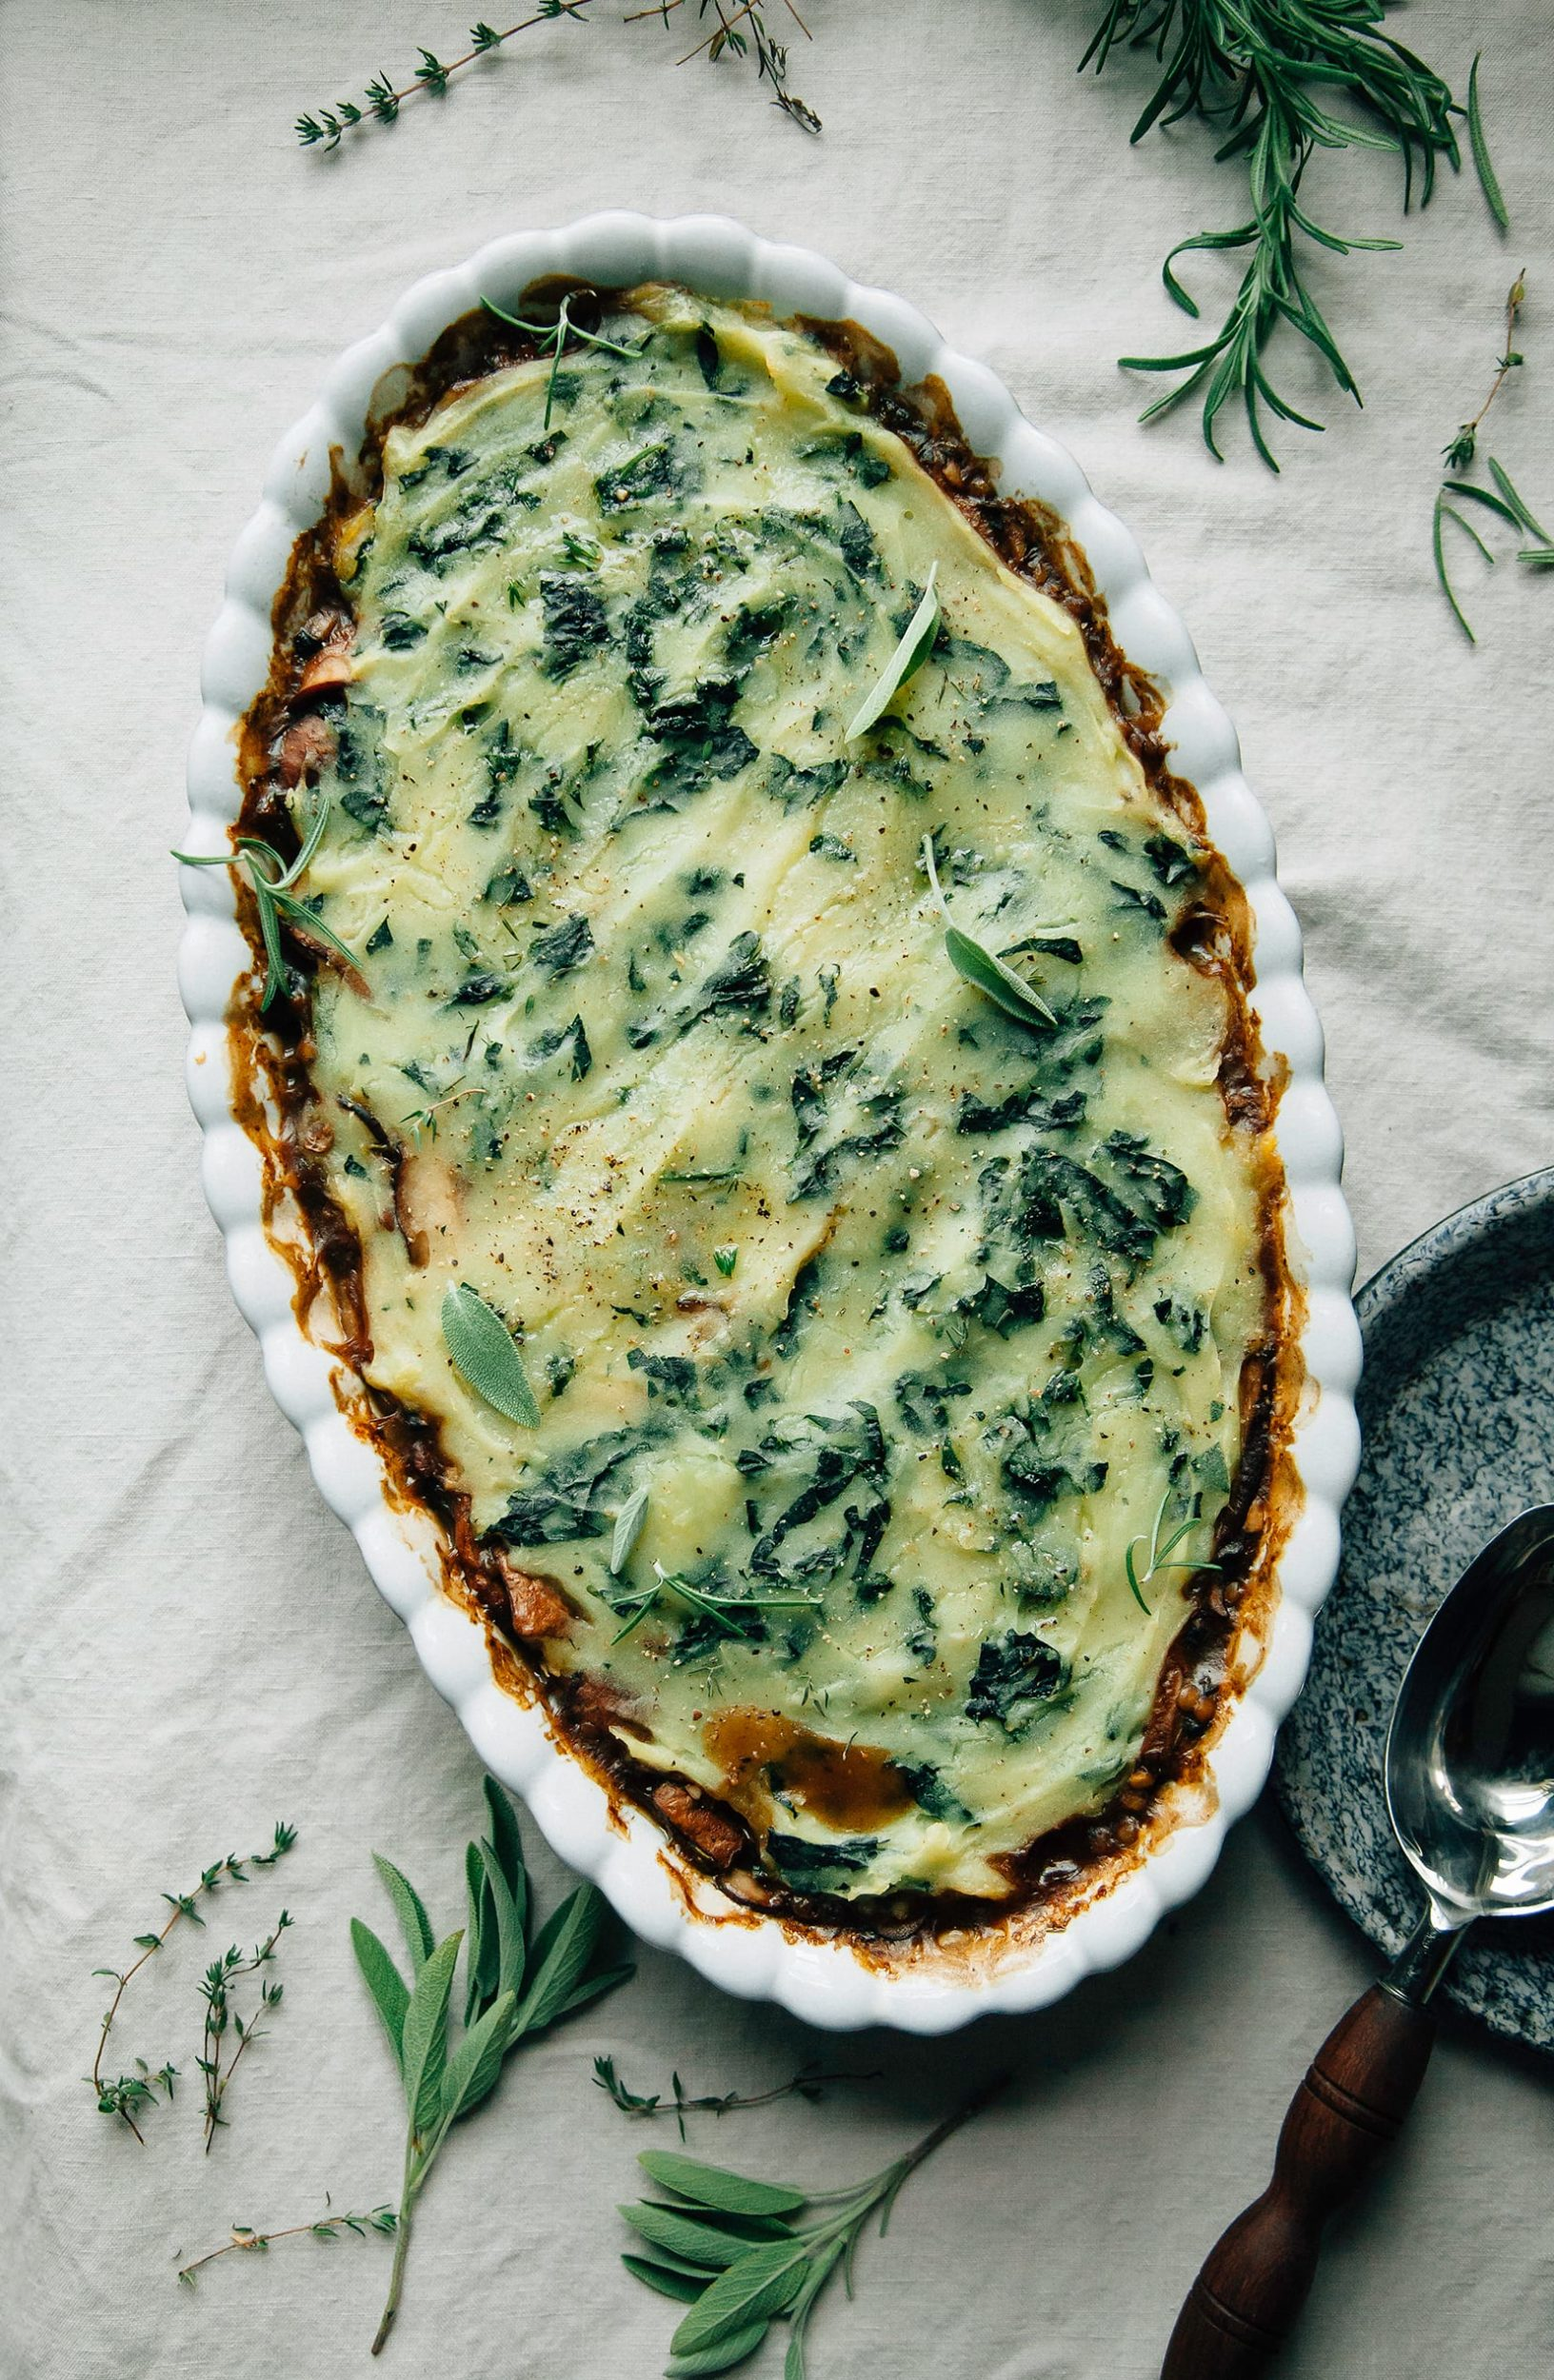 An overhead shot of a mushroom gravy pie topped with kale mashed potatoes in a baking dish.